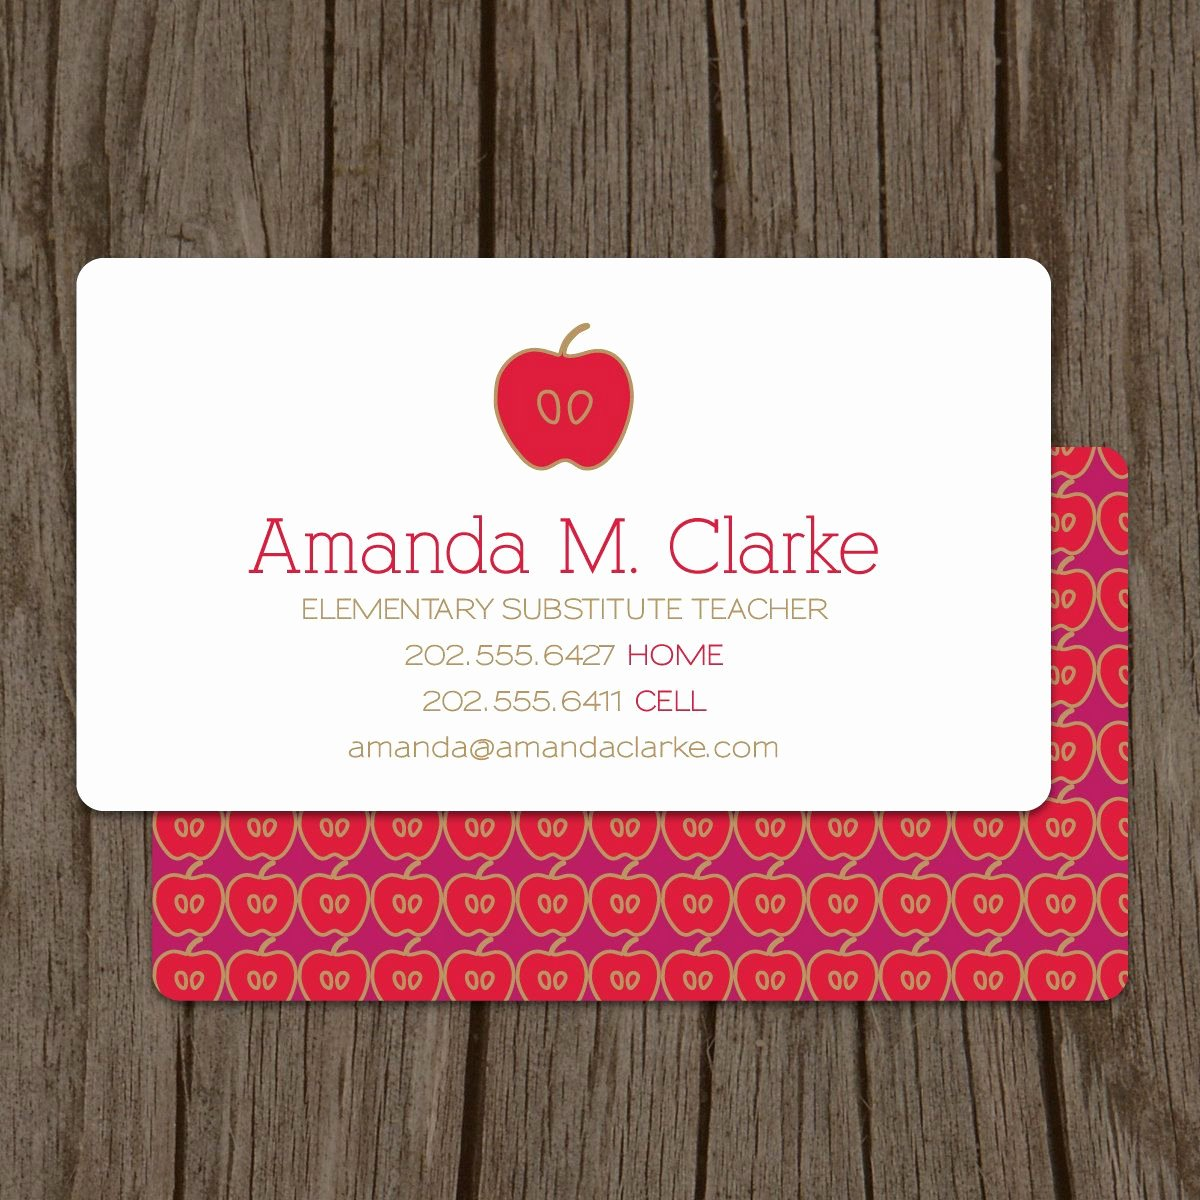 Substitute Teacher Buisness Cards New Modern Substitute Teacher Business Card Set Of 100 $48 00 Via Etsy